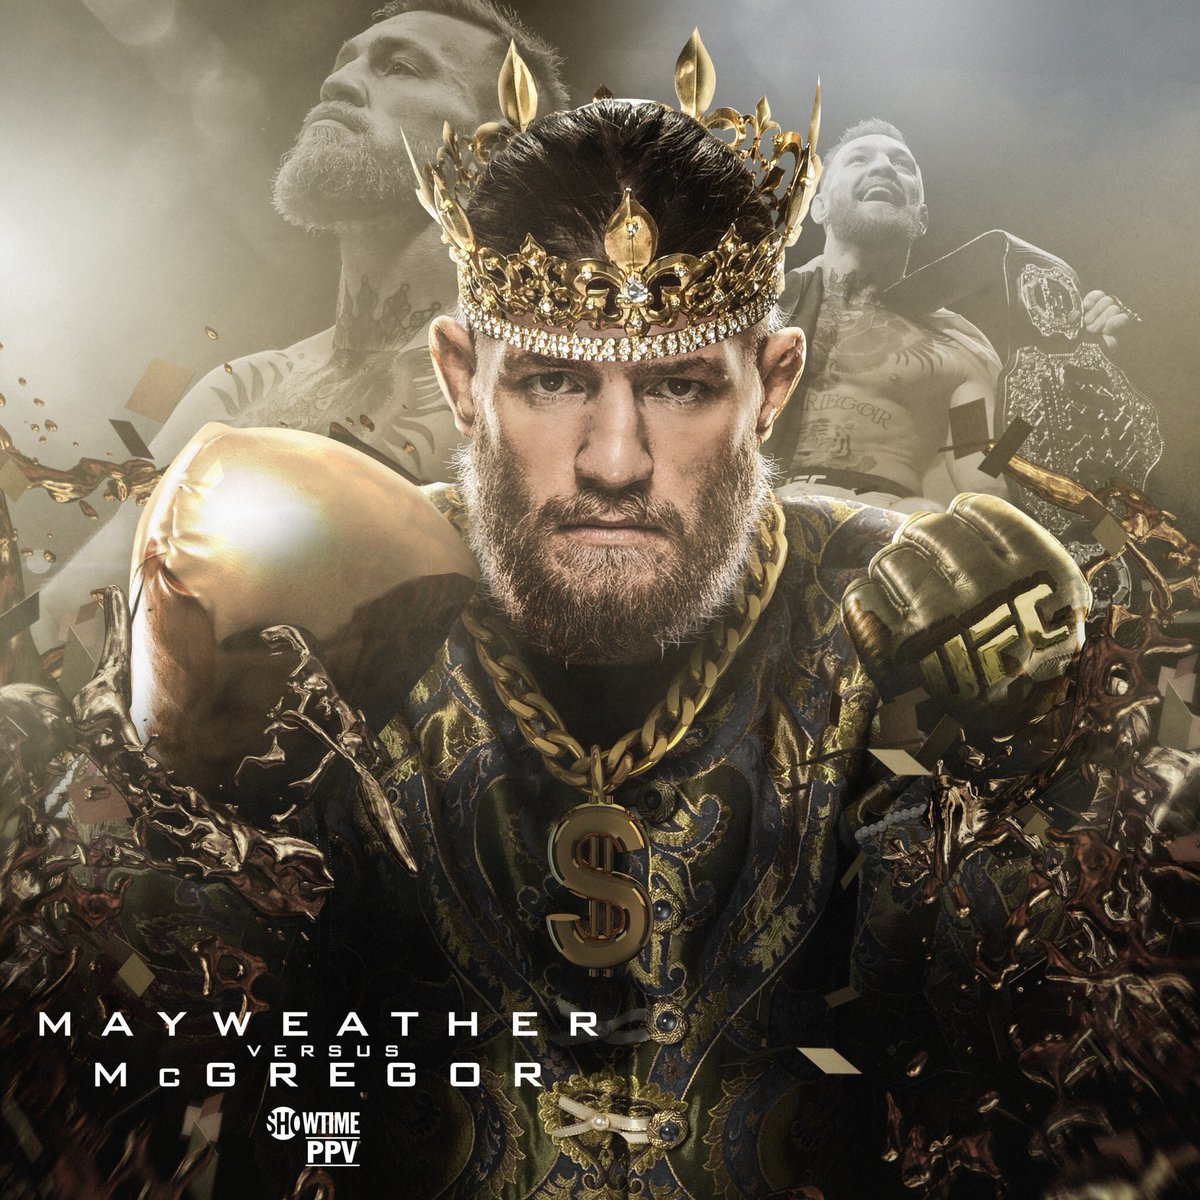 Conor rumored to be walking out with his four Titles  #PureEVilMMA #MayMac #UFC #MMA #Boxing #TeamMMA4Life<br>http://pic.twitter.com/pV2KoVIidU